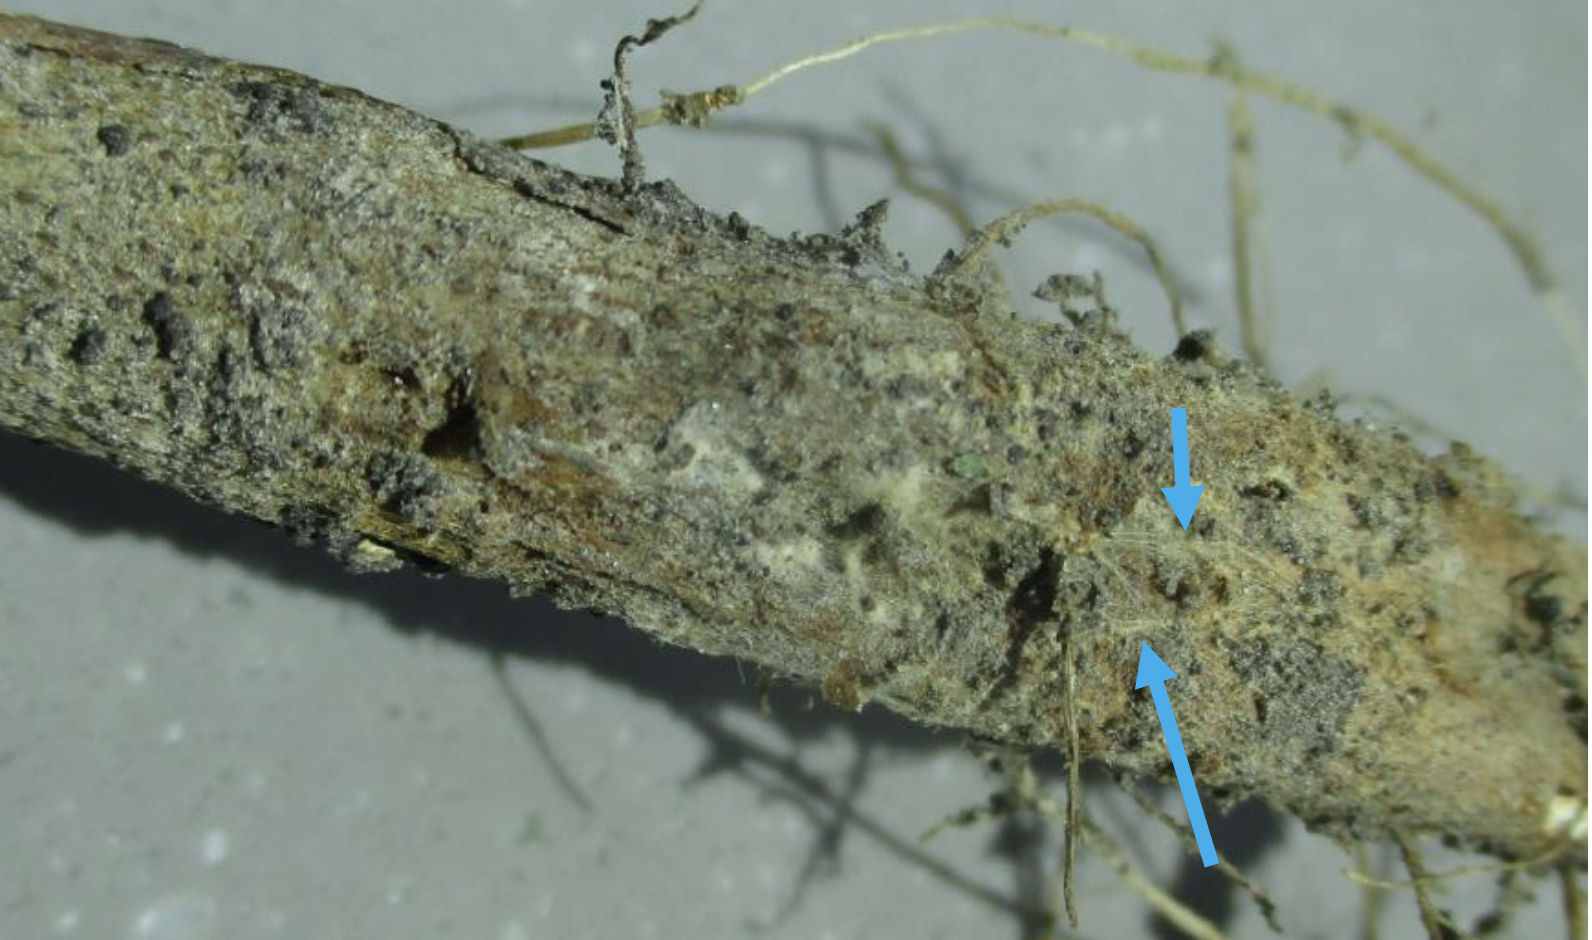 Root showing theadlike strands of fungal growth.